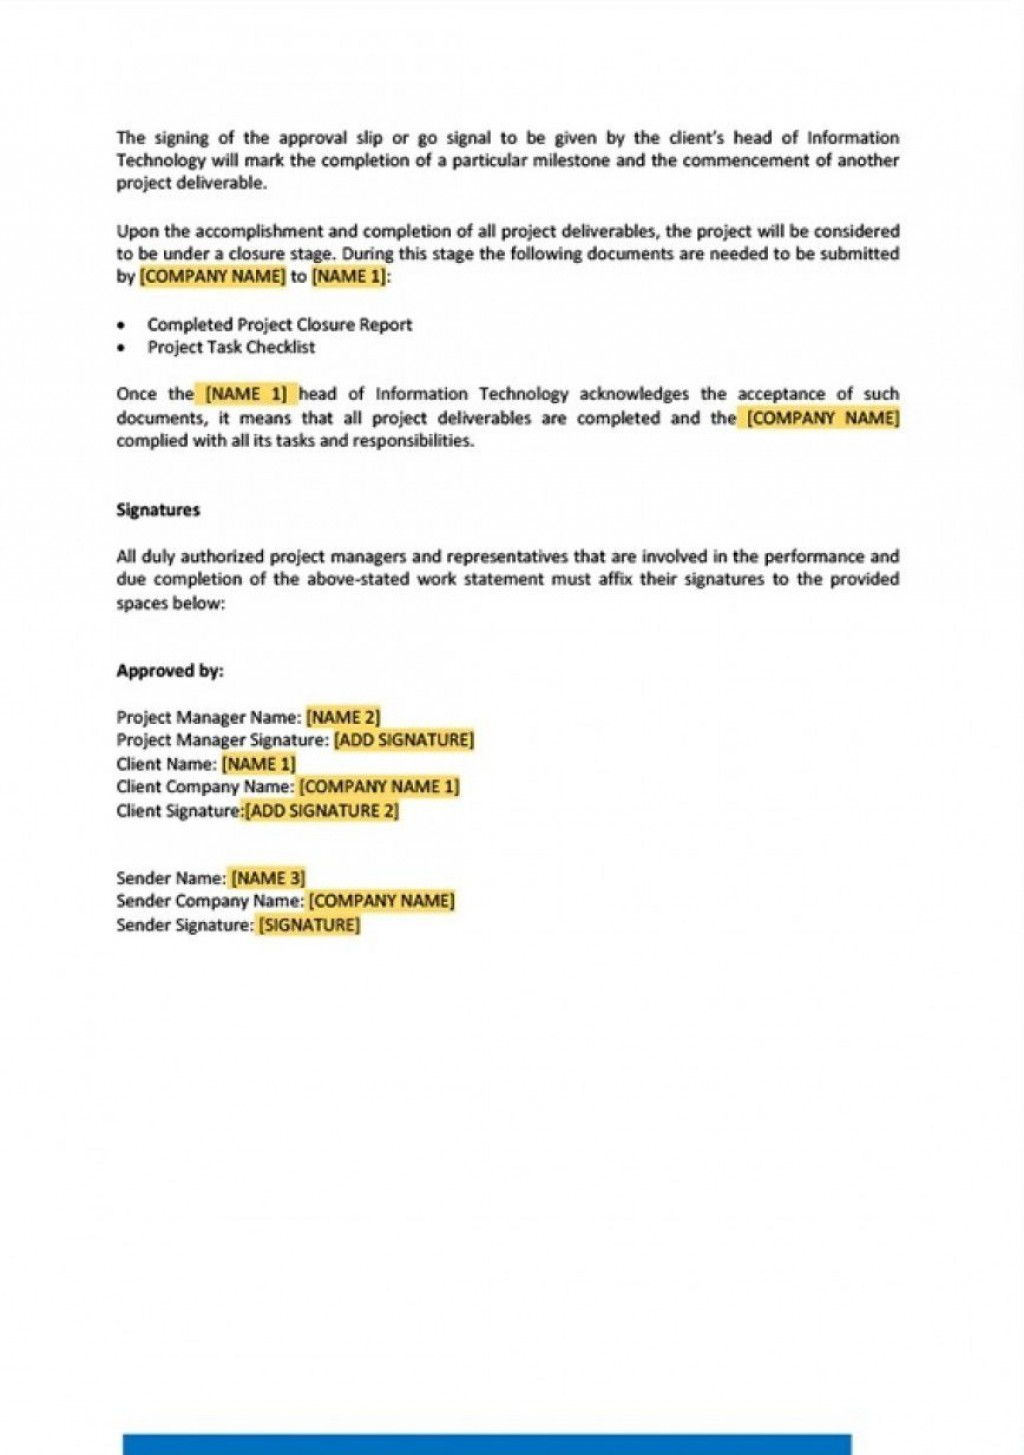 009 Frightening Statement Of Work Example Software Consulting Highest Quality Large